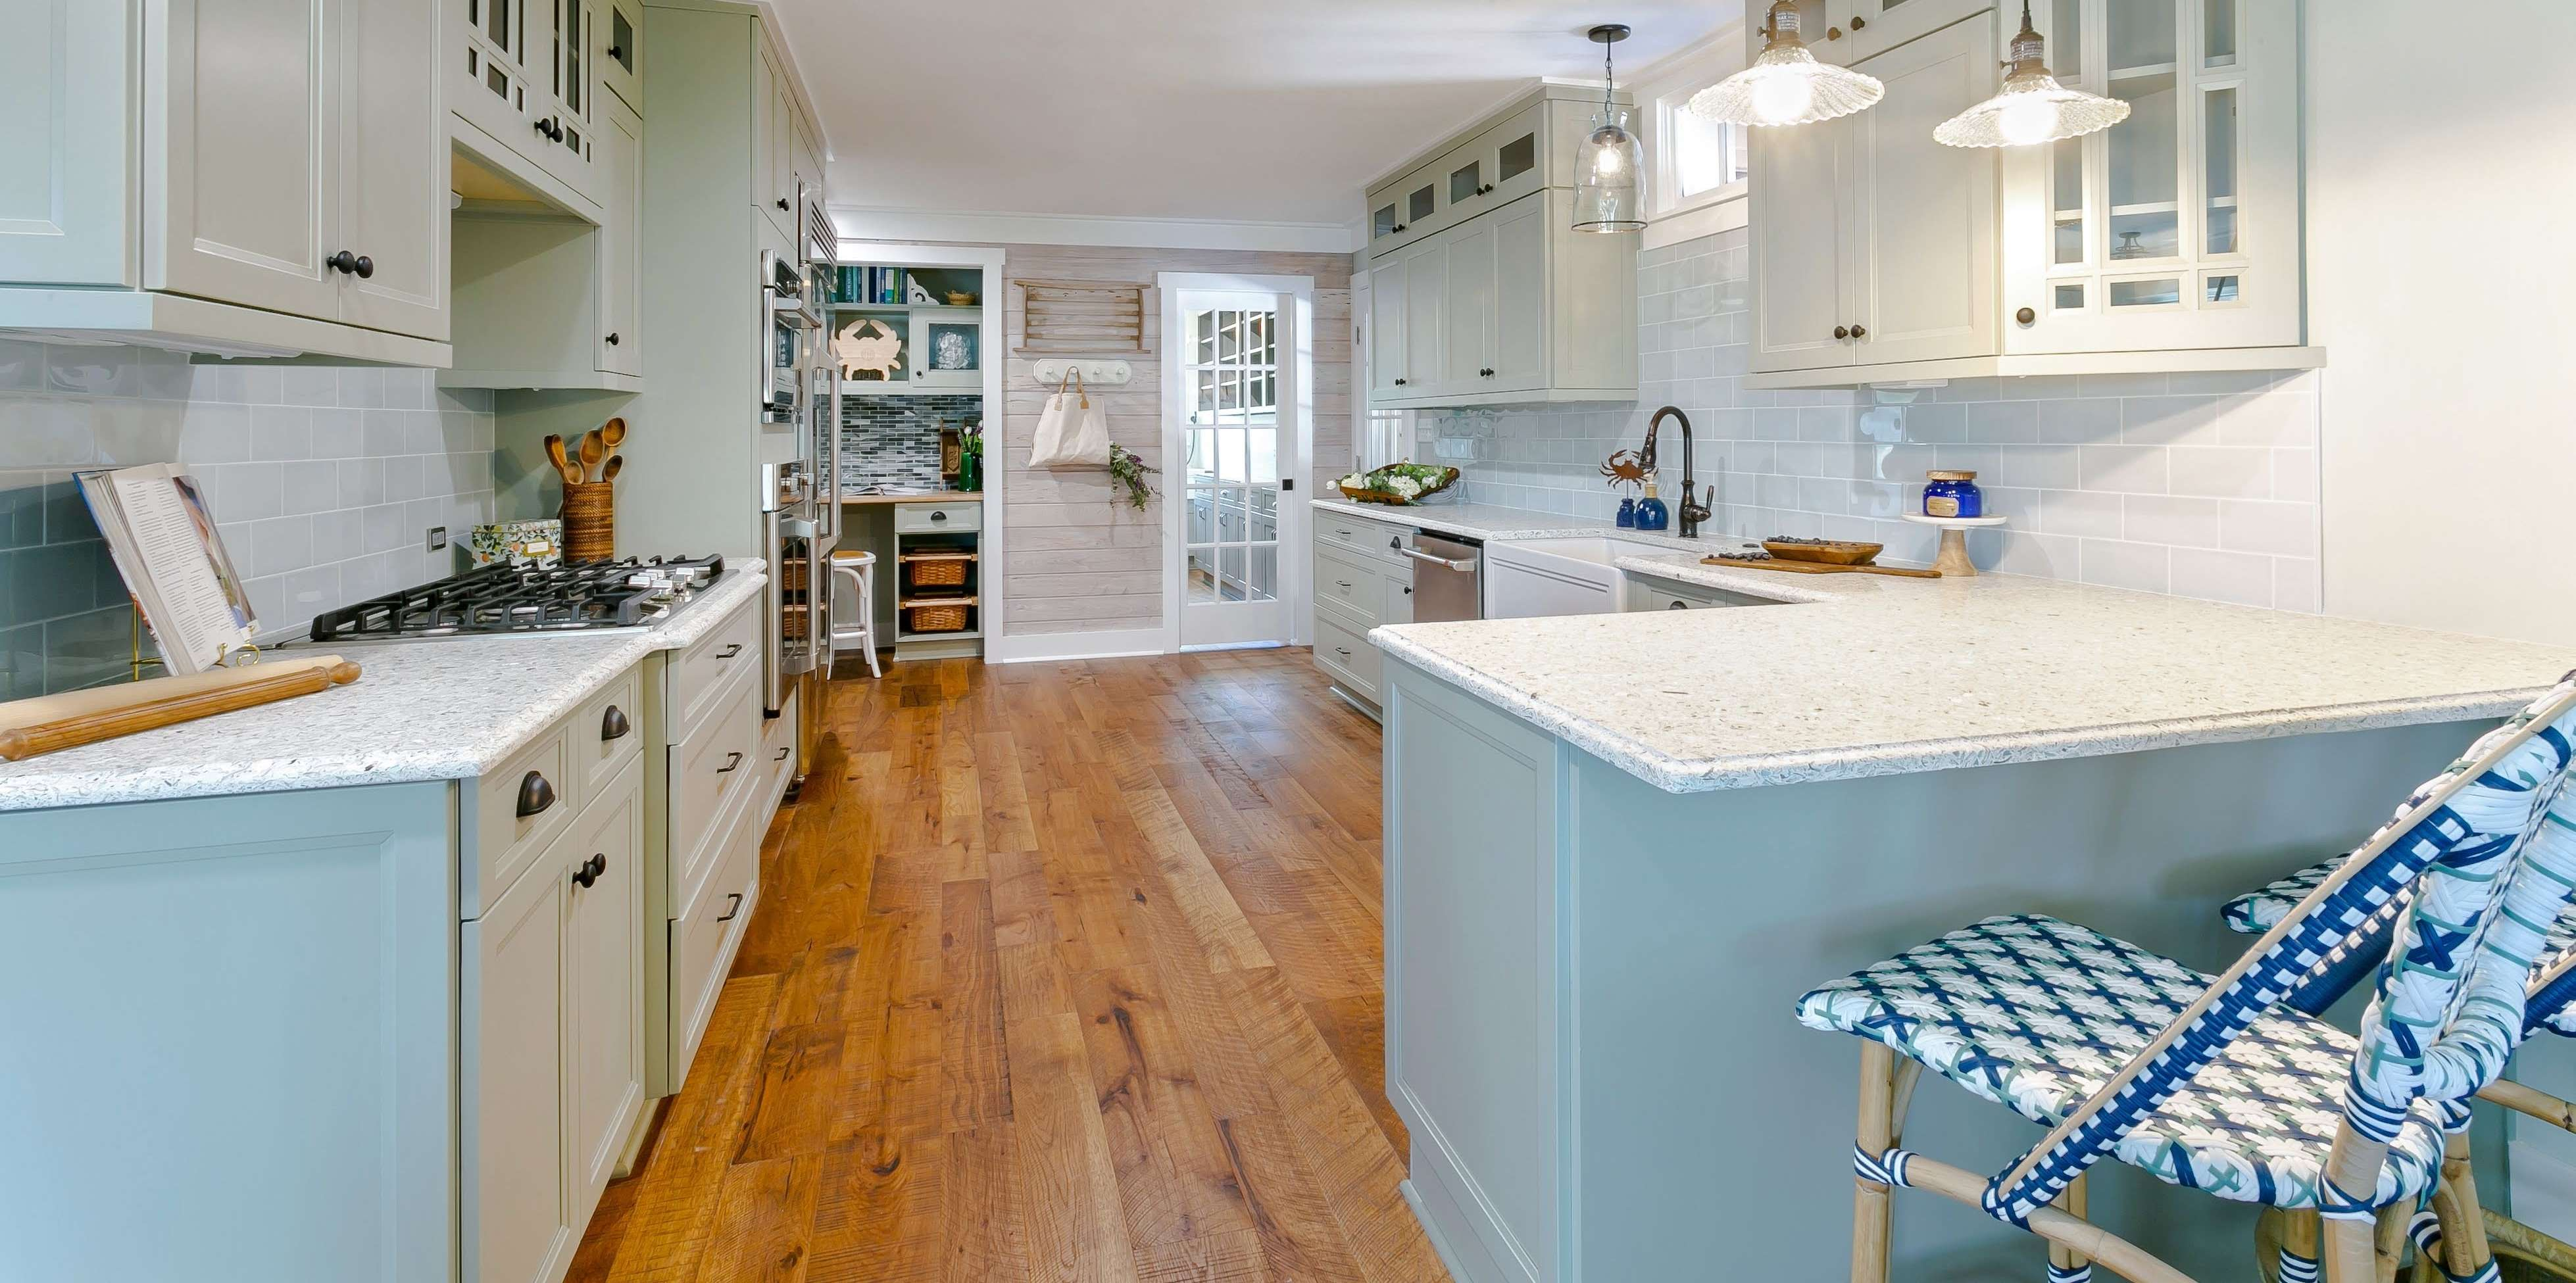 Renovating Homes to Fit the Lowcountry Lifestyle